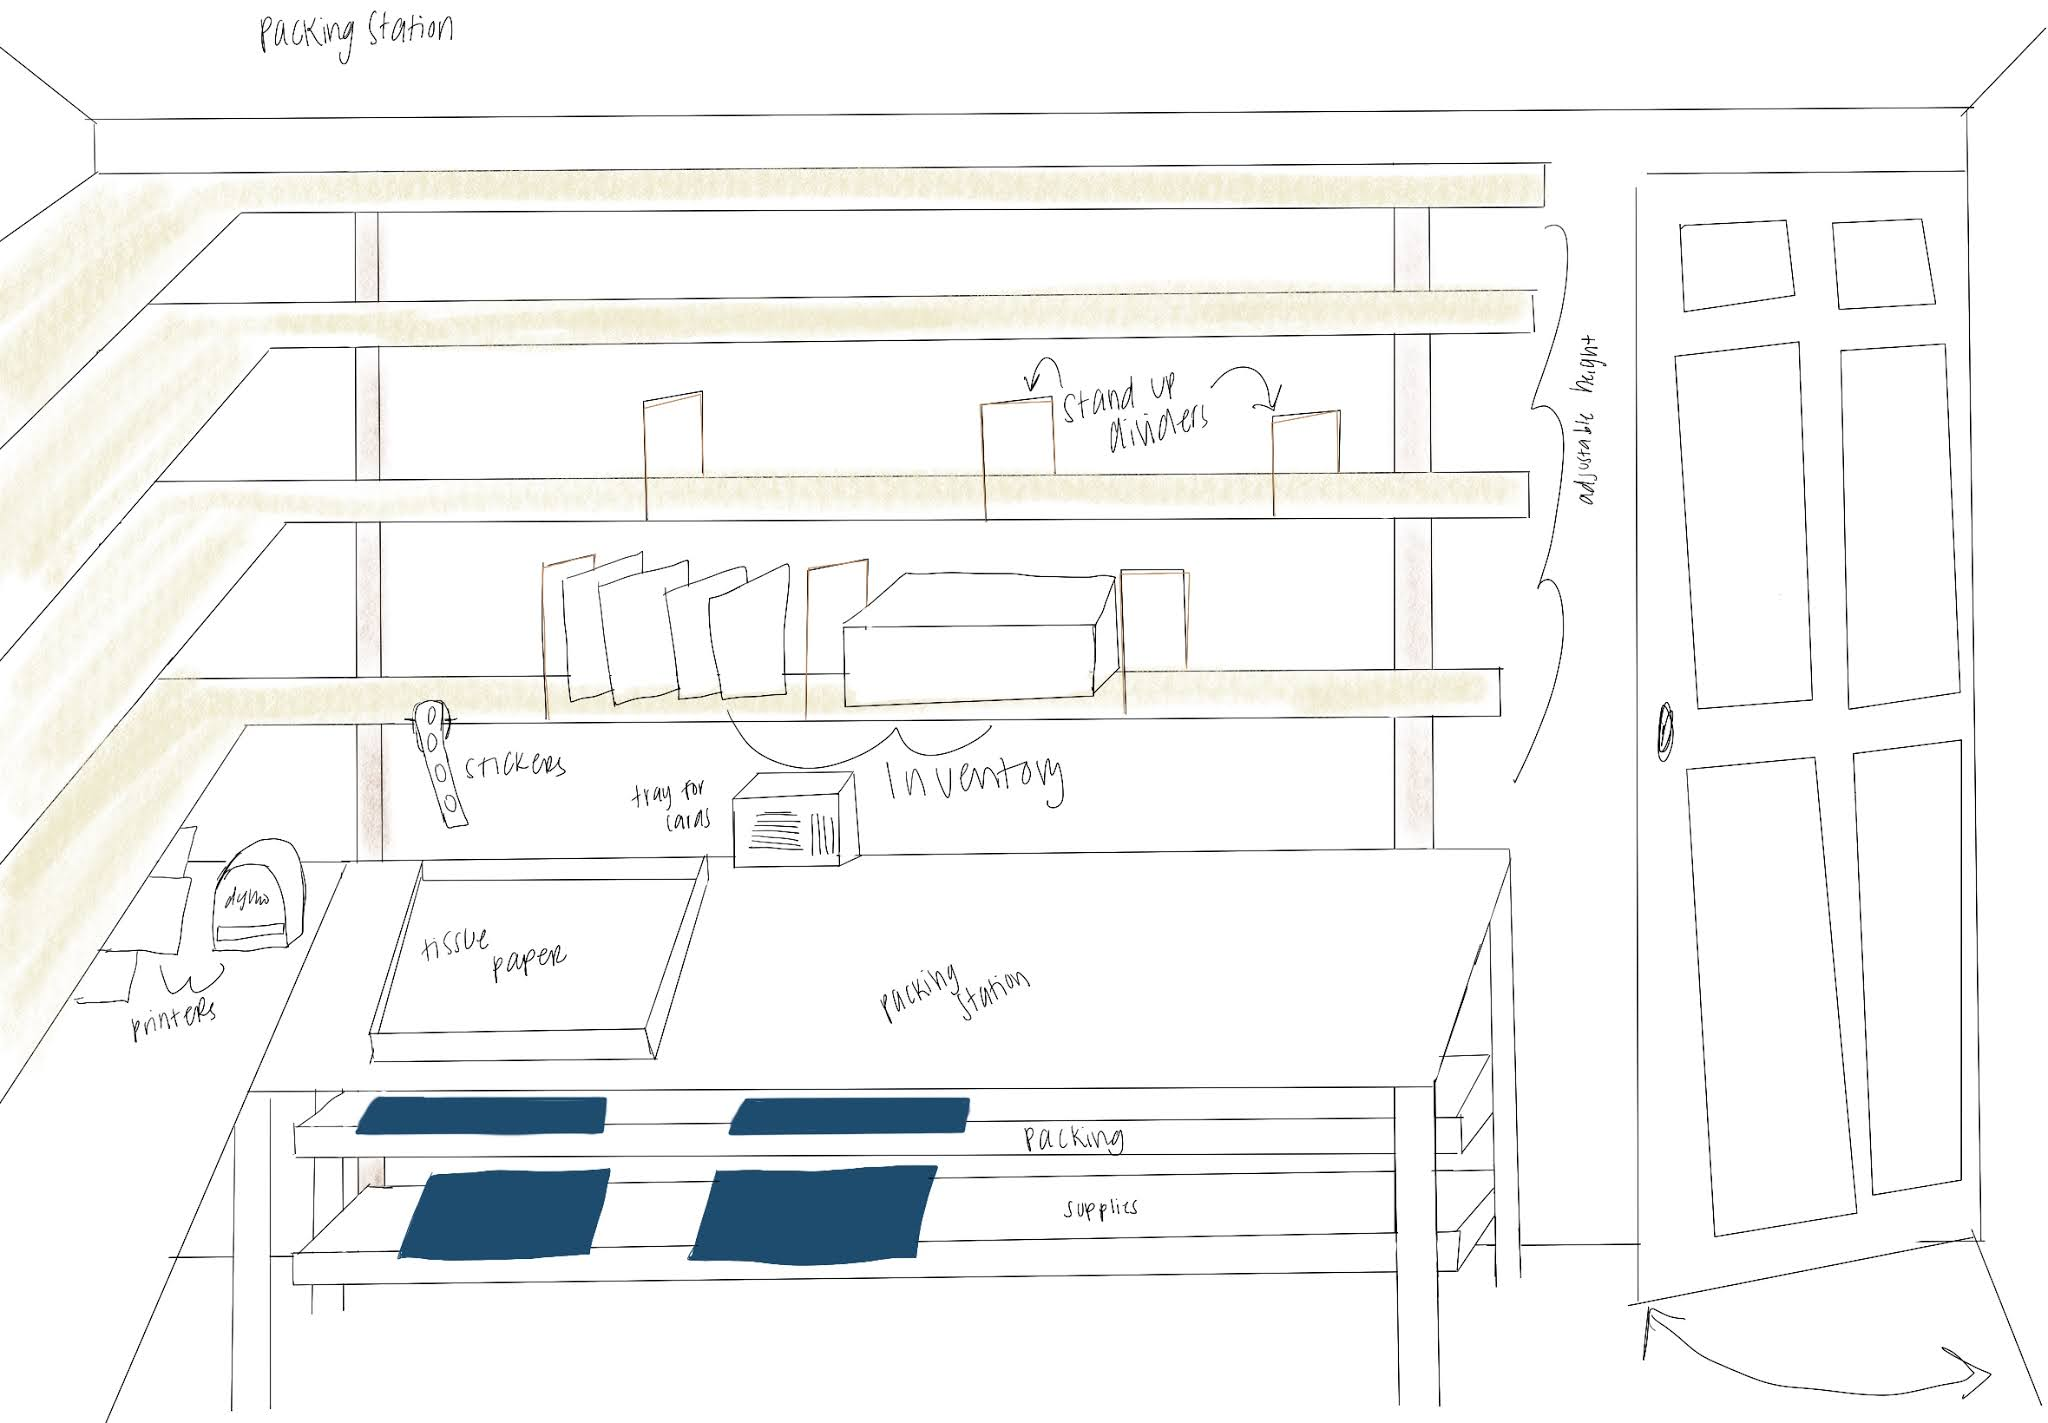 packing station drawing plan